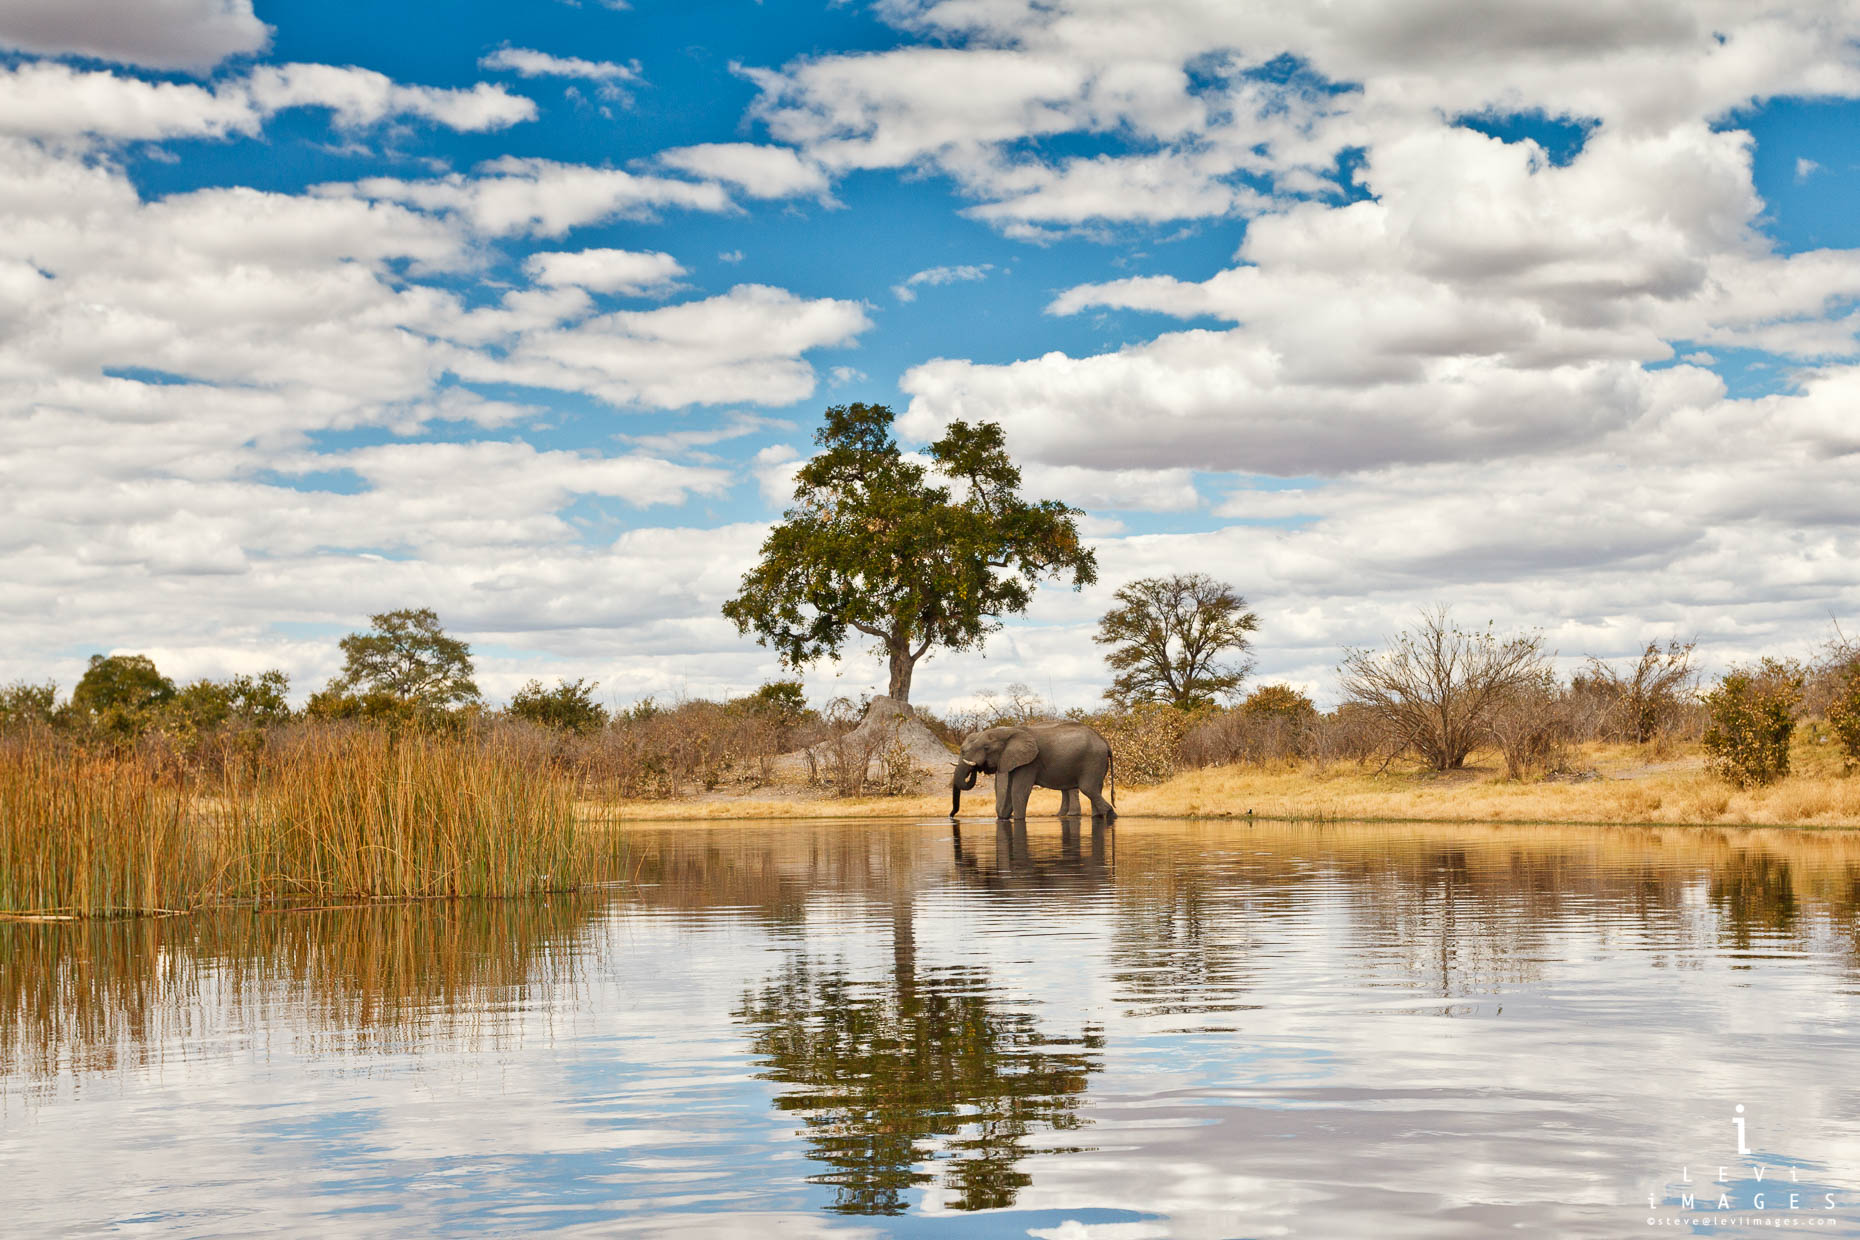 Elephants, clouds and tree reflected in Savuti channel, Botswana